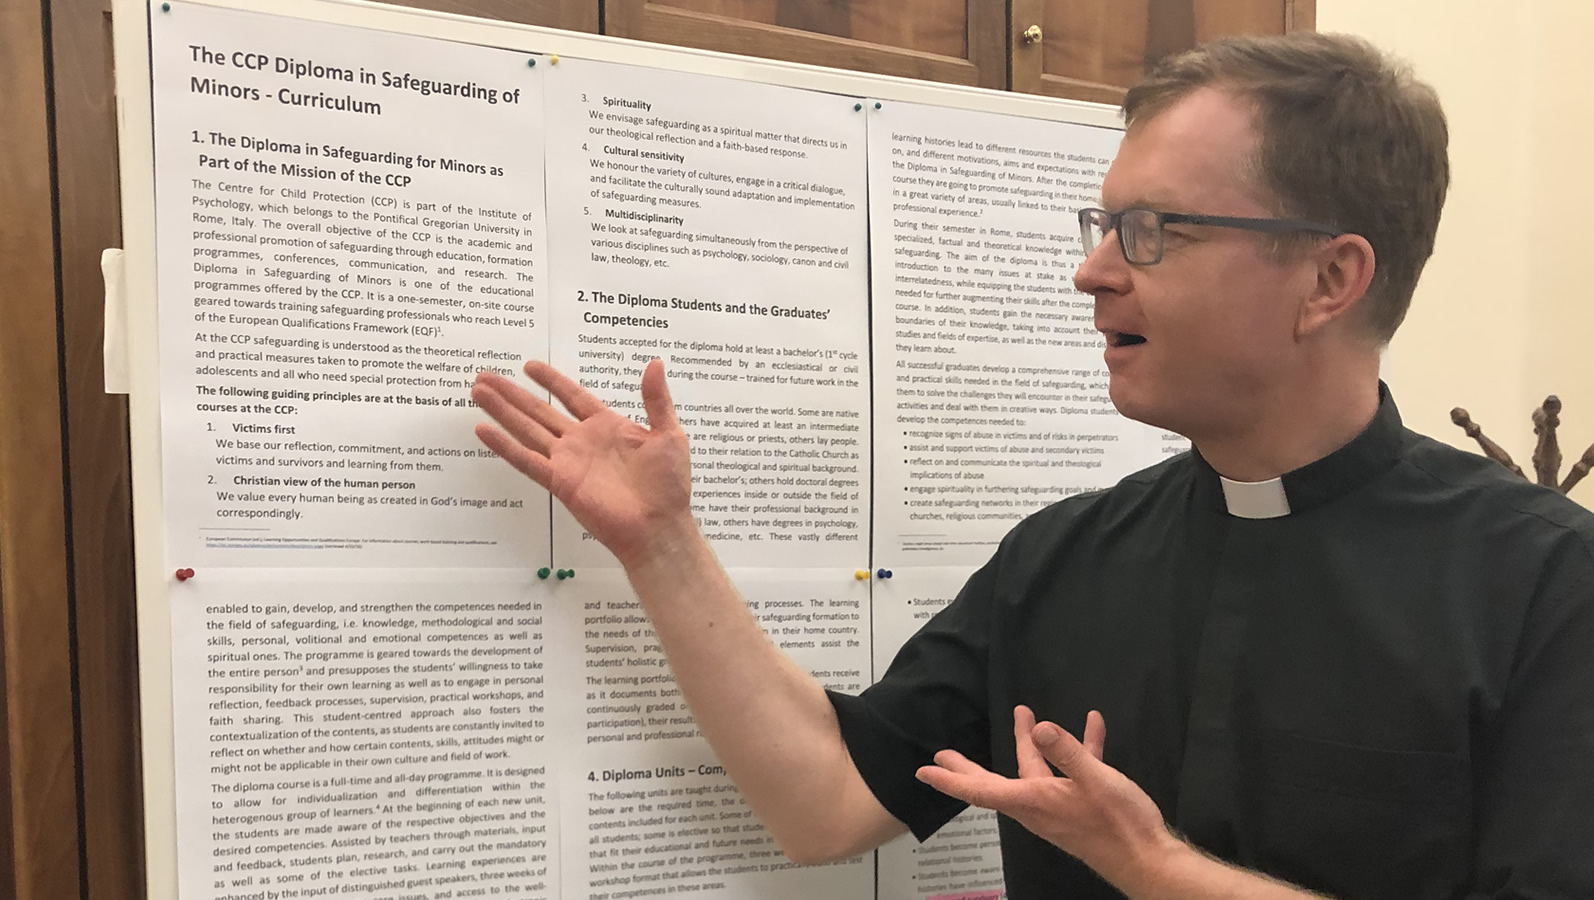 Fr. Hans Zollner at the Centre for Child Protection in Rome